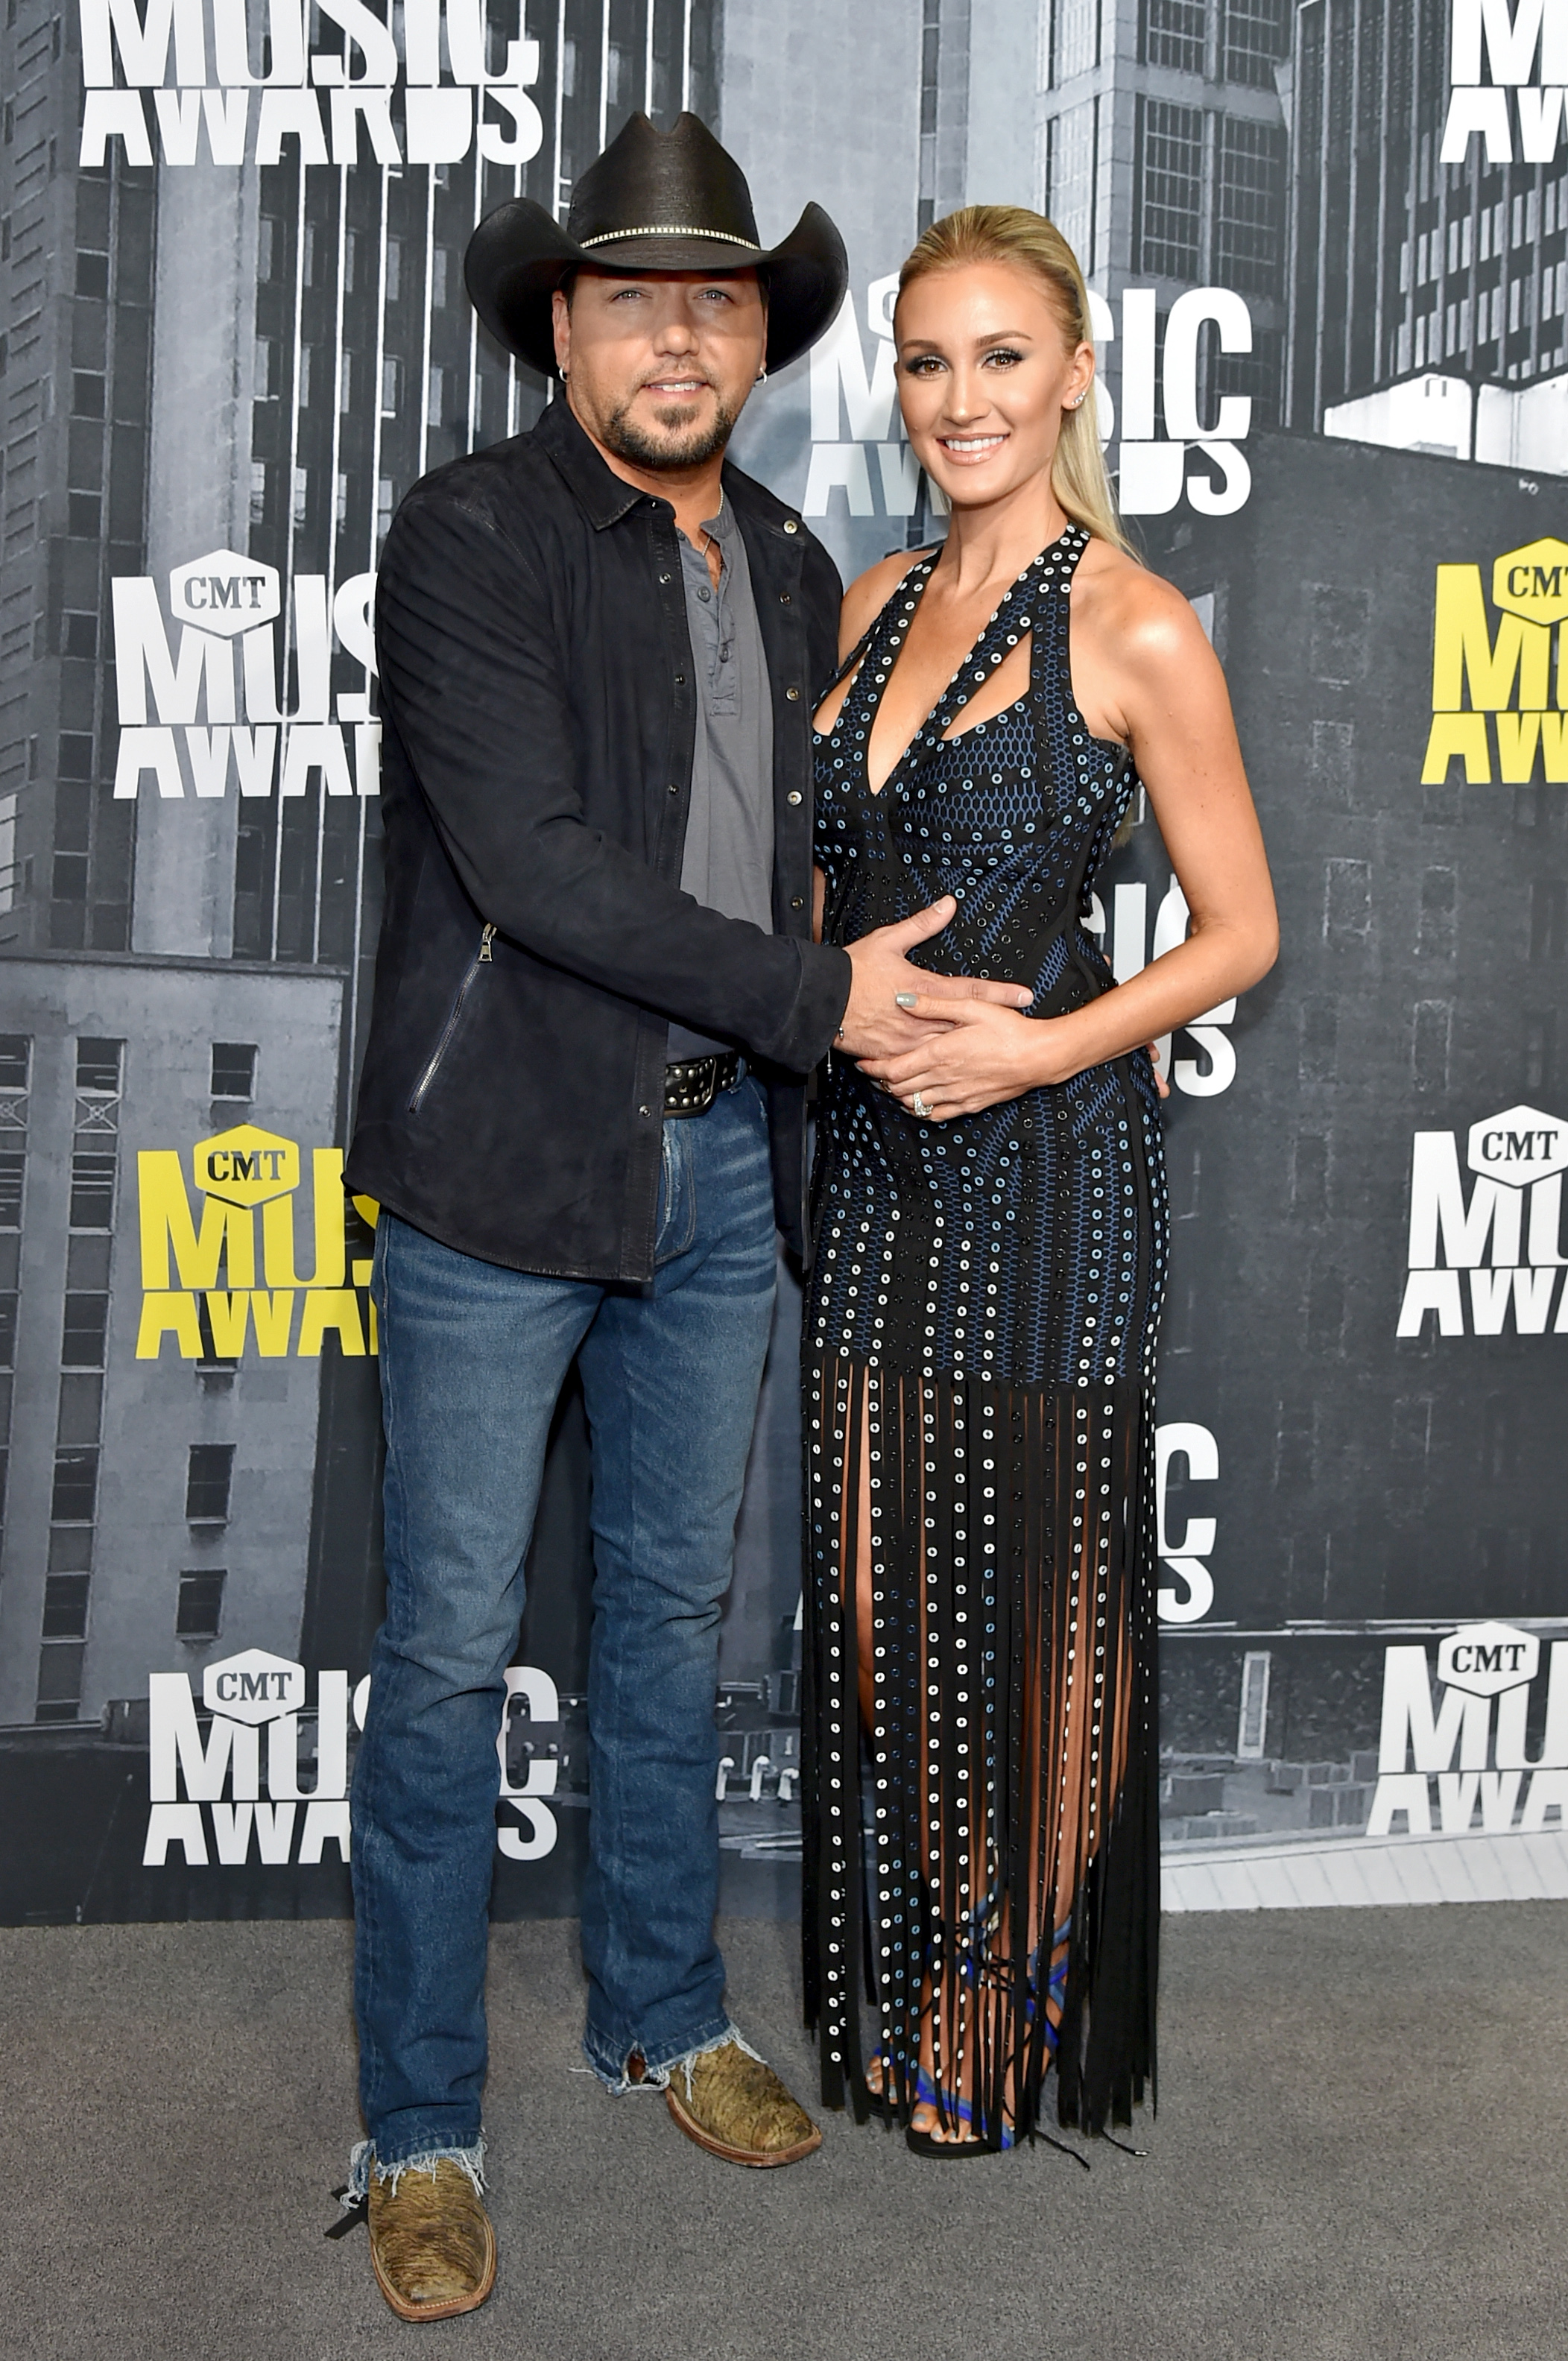 NASHVILLE, TN - JUNE 07: Singer-songwriter Jason Aldean and Brittany Kerr attend the 2017 CMT Music Awards at the Music City Center on June 7, 2017 in Nashville, Tennessee. (Photo by Mike Coppola/WireImage)